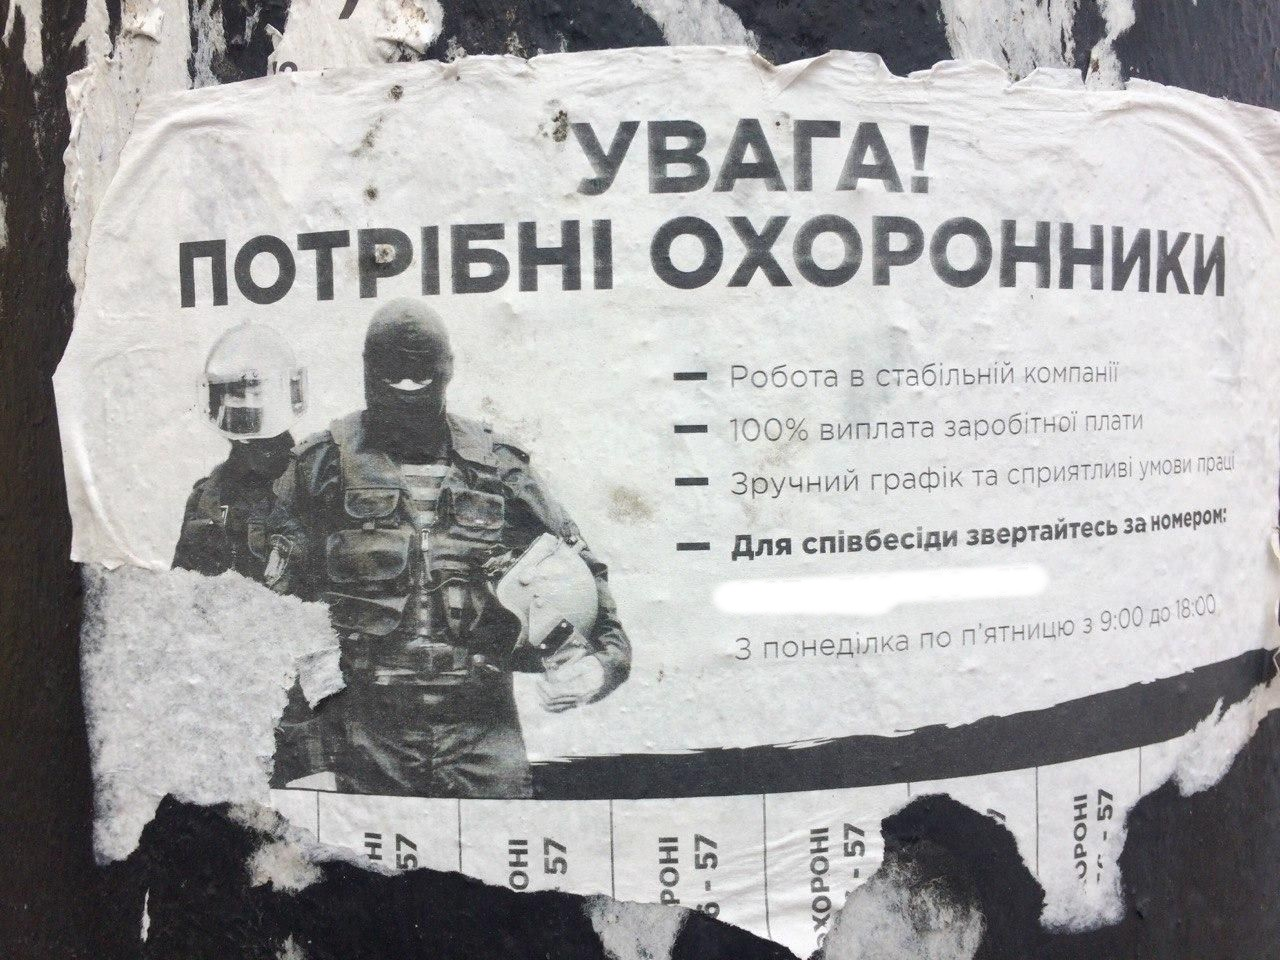 Security guard job listing on the streets in Ukraine.